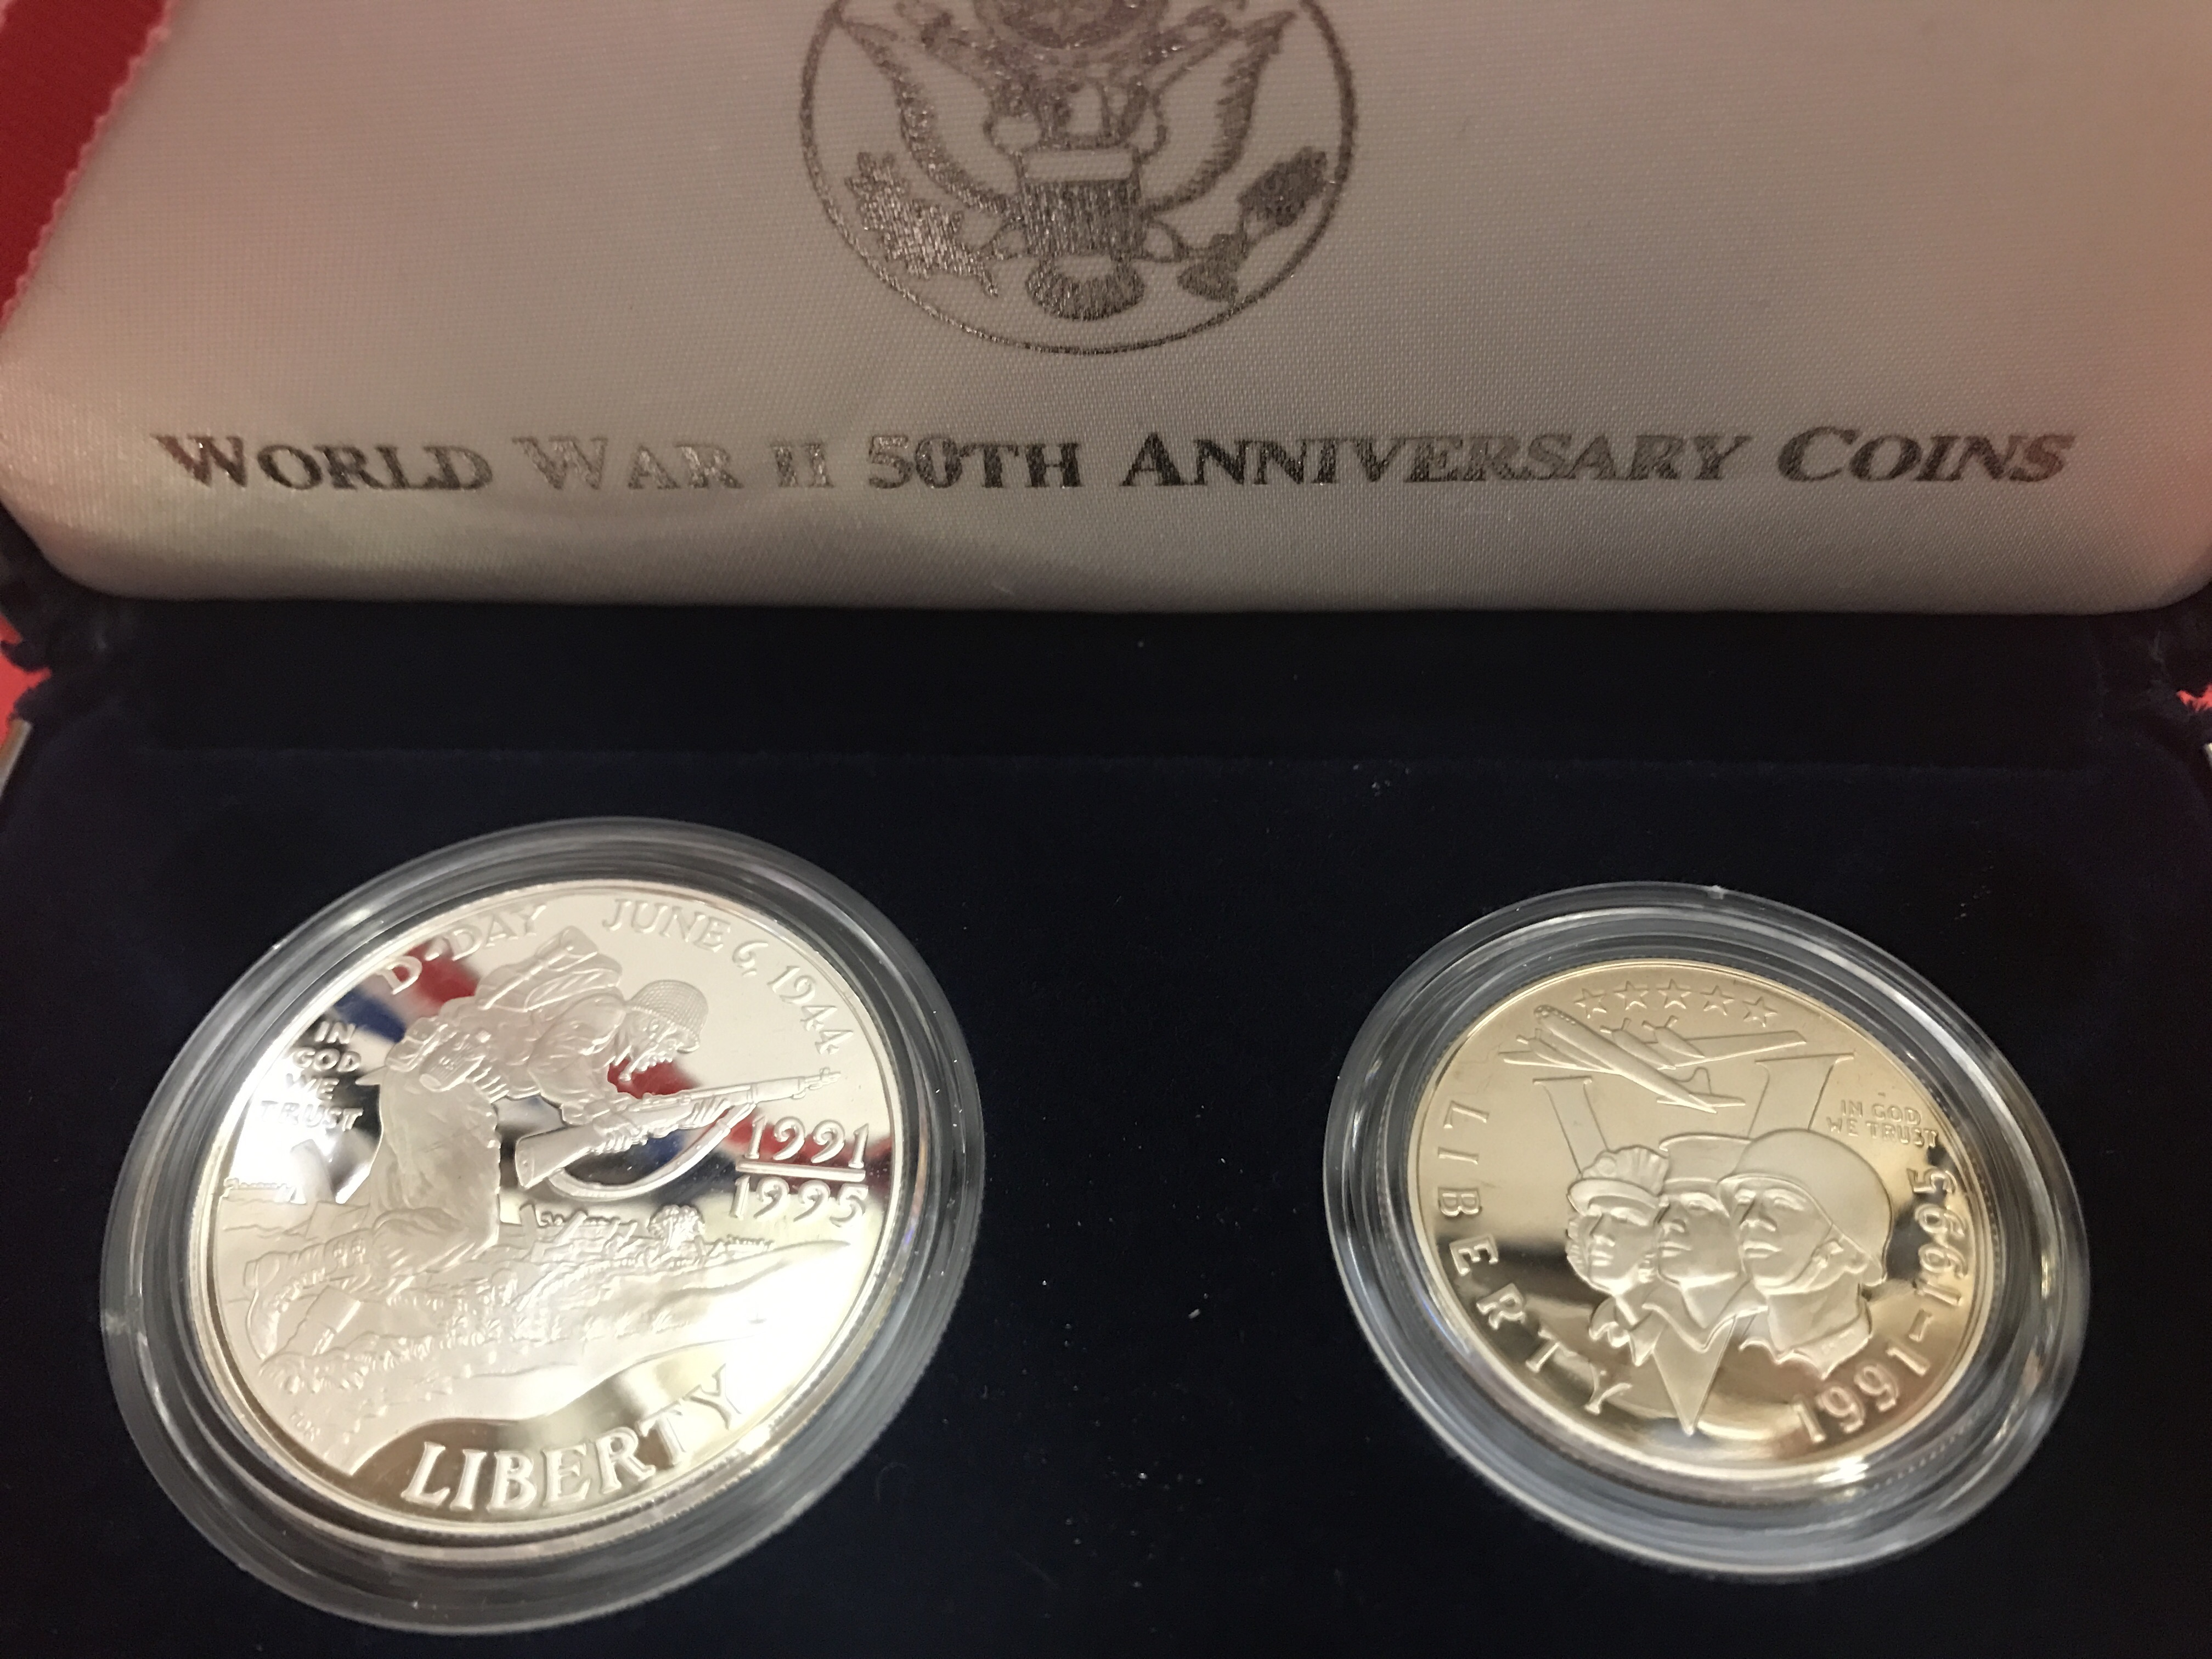 U.S. Coin - 'Proof' - Silver Dollar & Clad 1/2- 1995 WWII